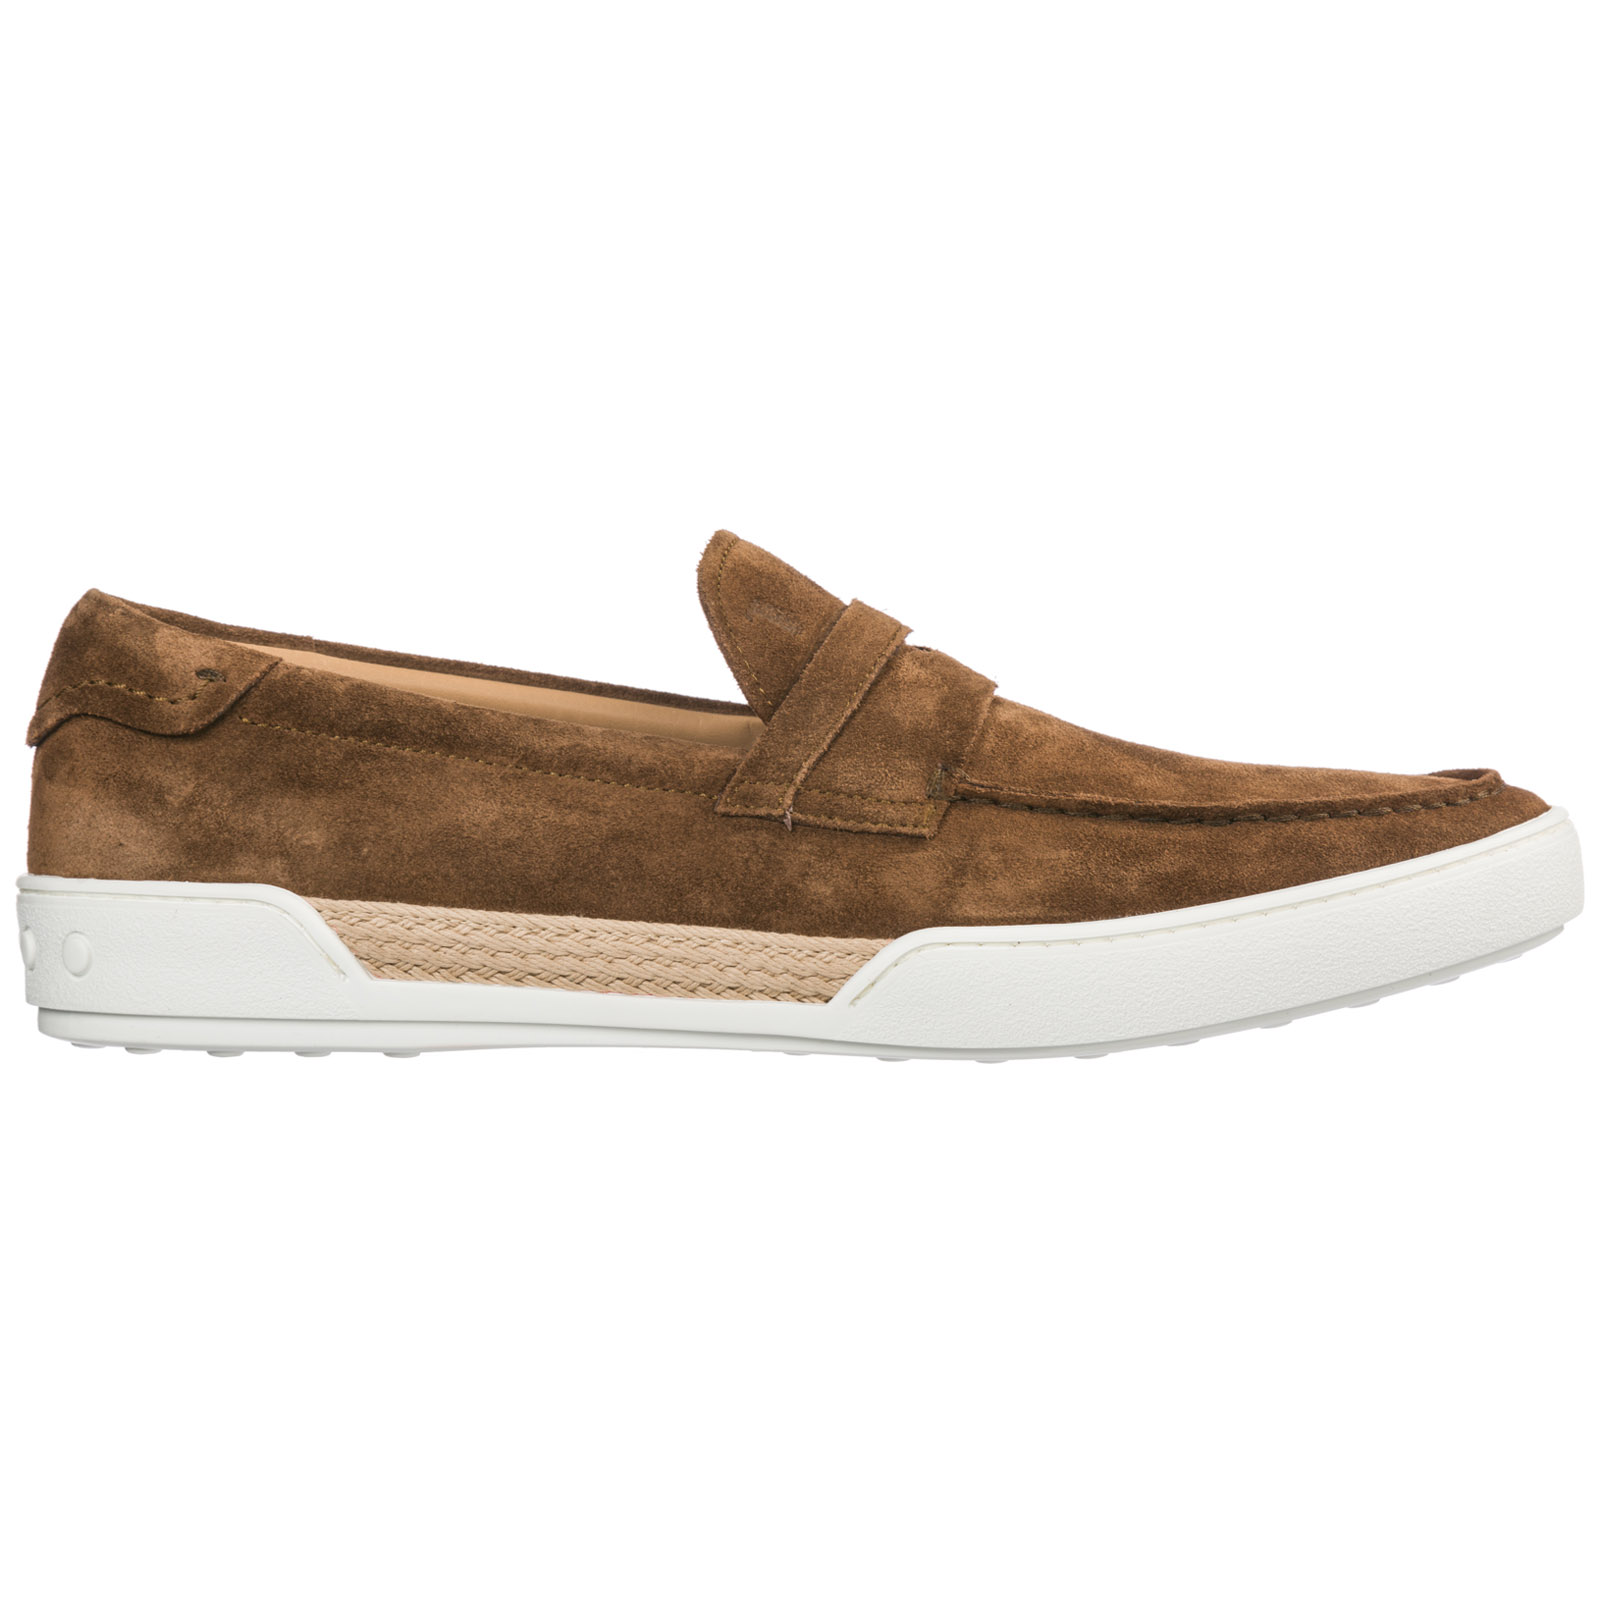 Tod's Shoes Men's suede loafers moccasins